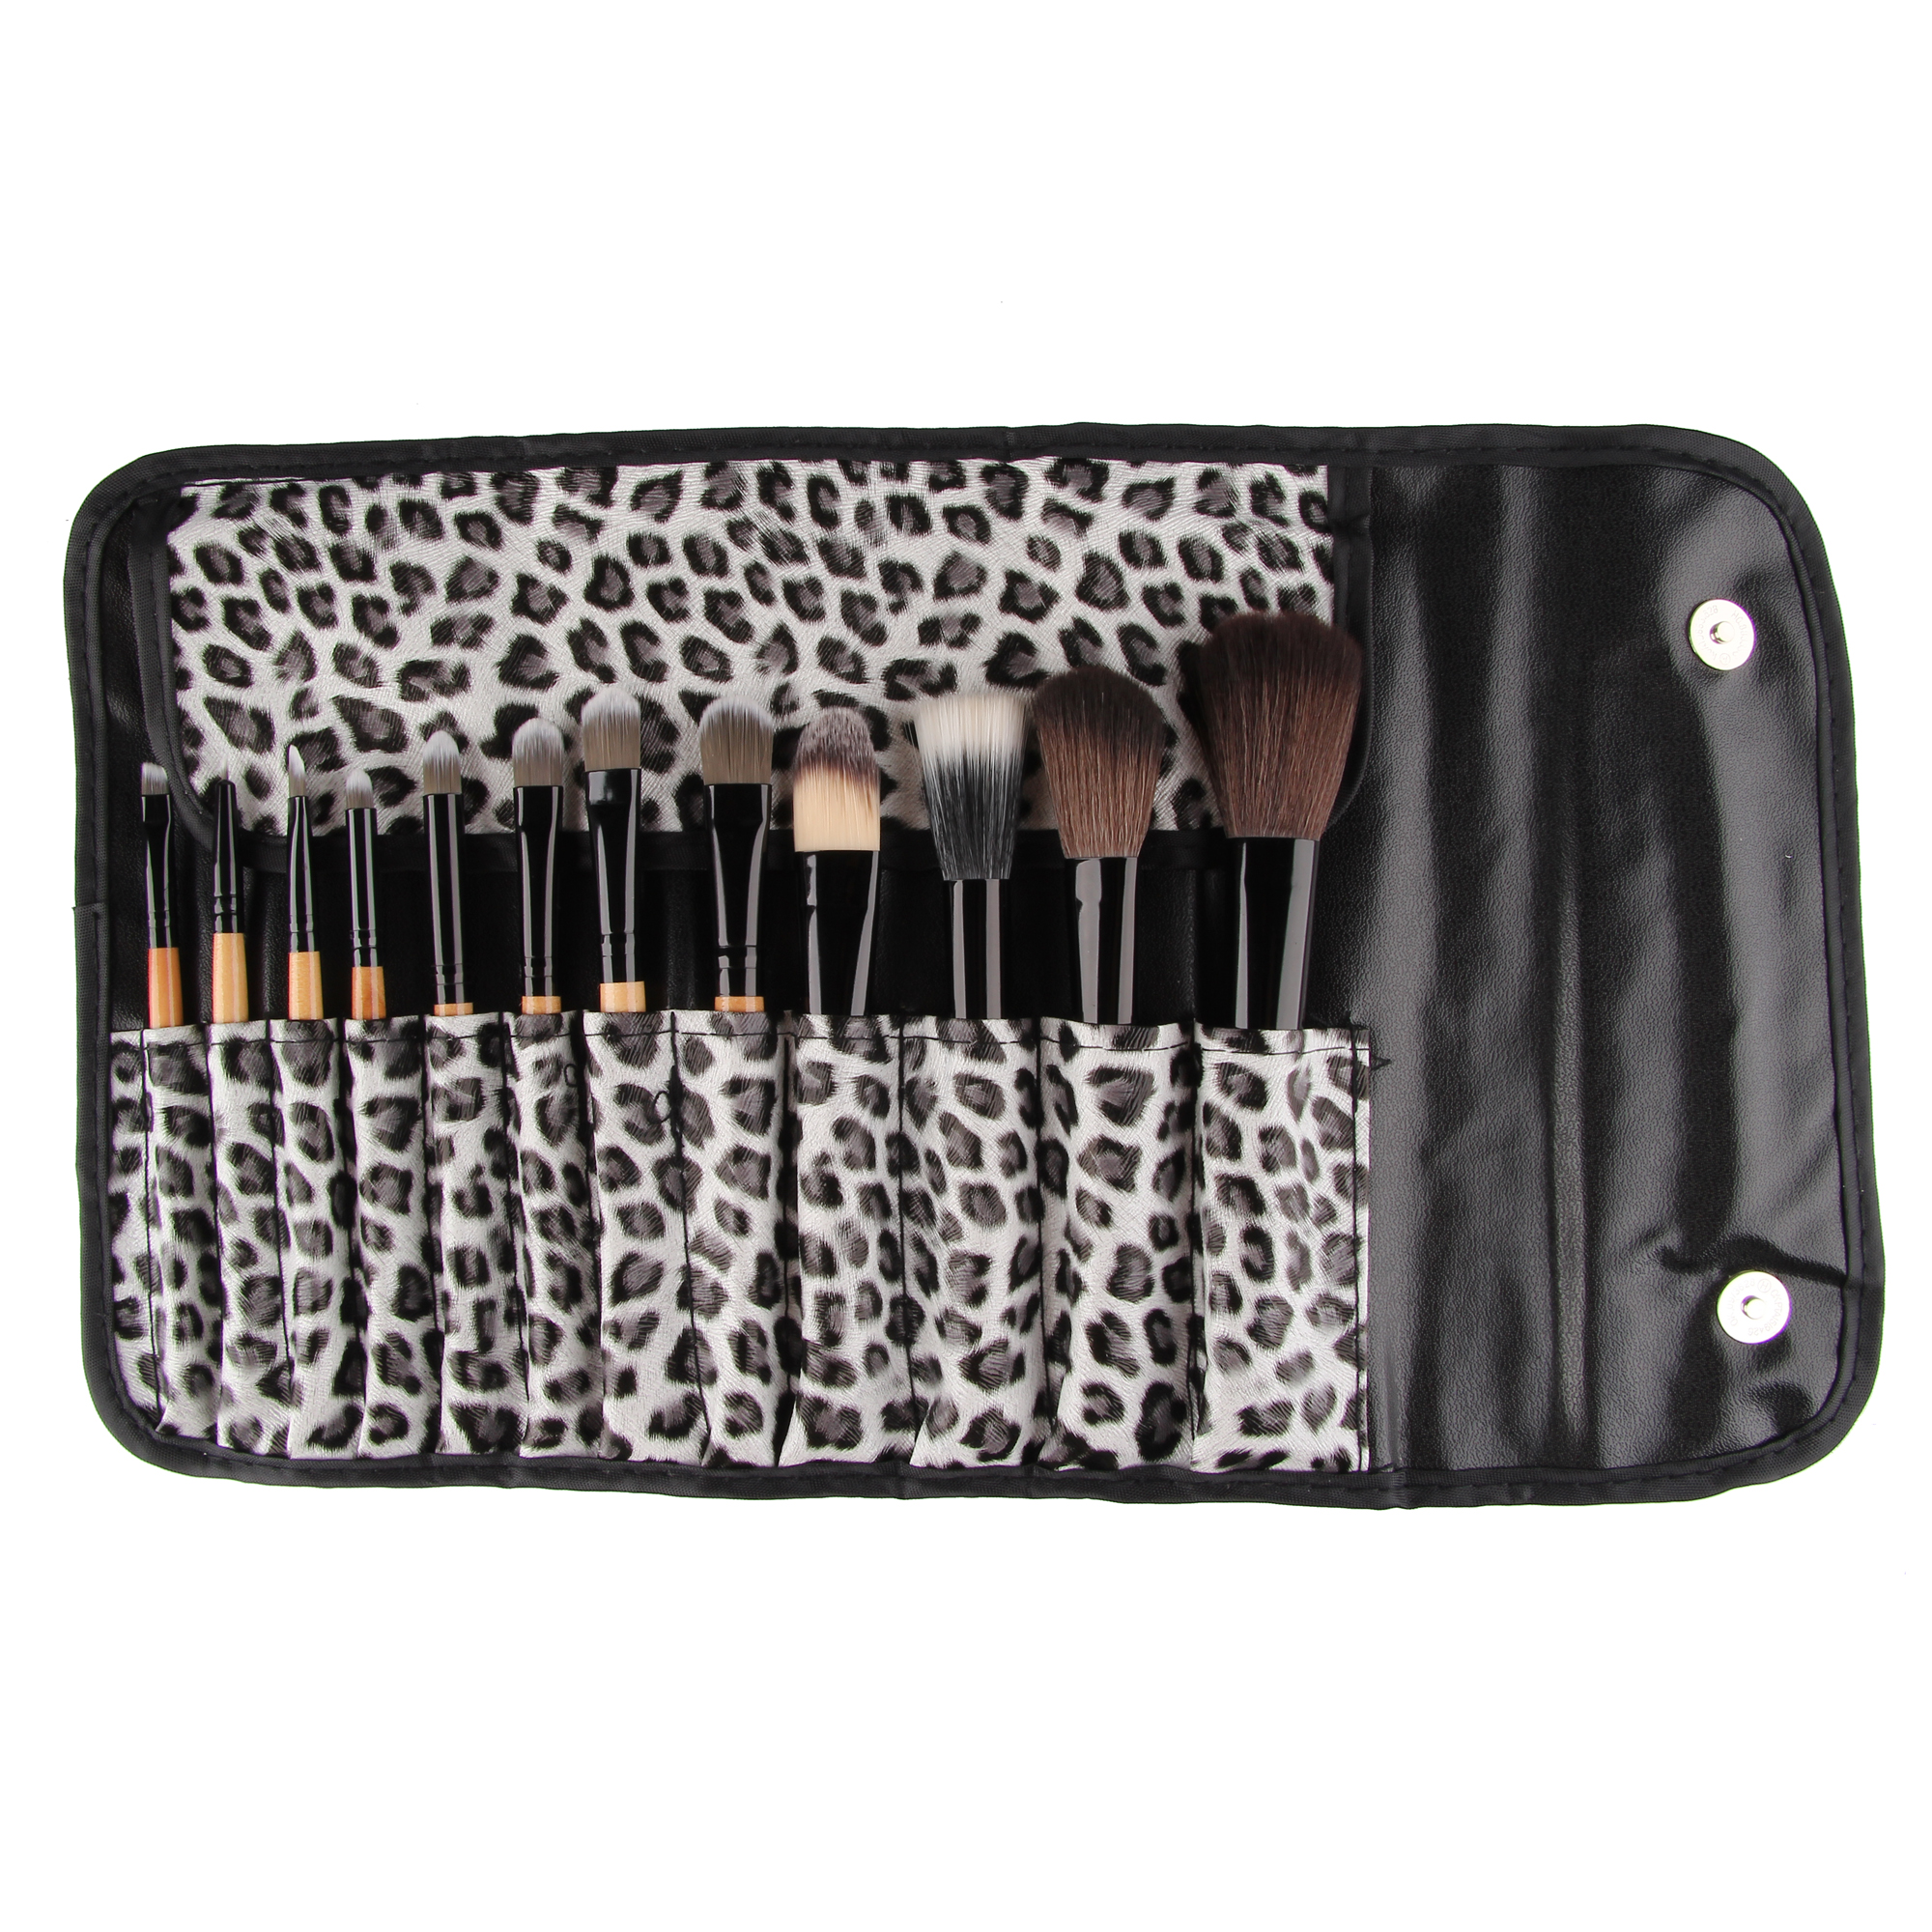 12Pcs Makeup Brush Set Foundation Cream Eyeshdow Facial Cosmetic Blush With Leopard Bag Make Up Tools Kit new style professional women lady facial makeup tools cream foundation soft type cosmetic make up brush easy carry